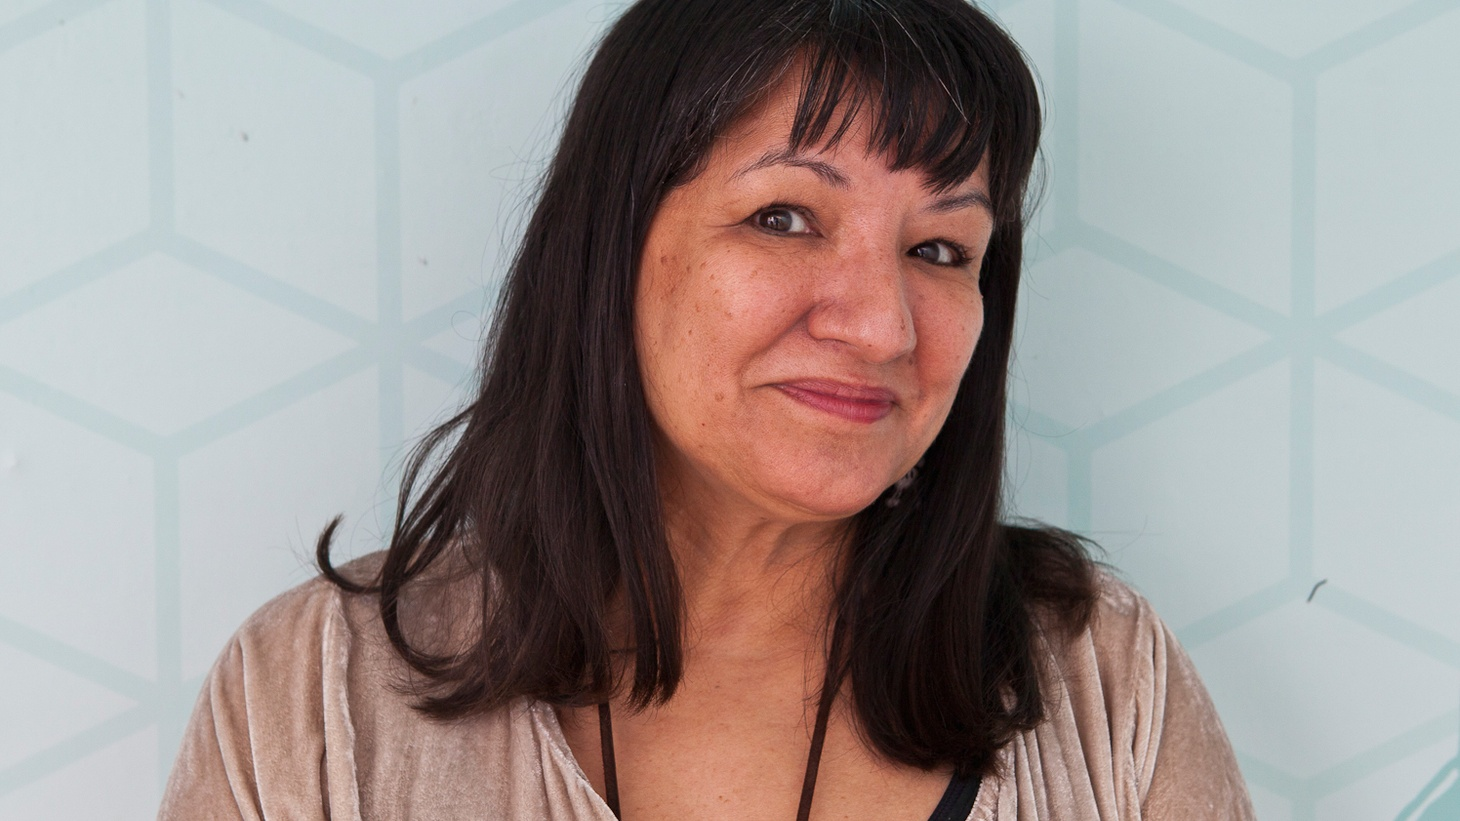 Sandra Cisneros, now in her sixties, looks back at her journey to find her voice, in a candid memoir woven from prose, photographs, and essays.